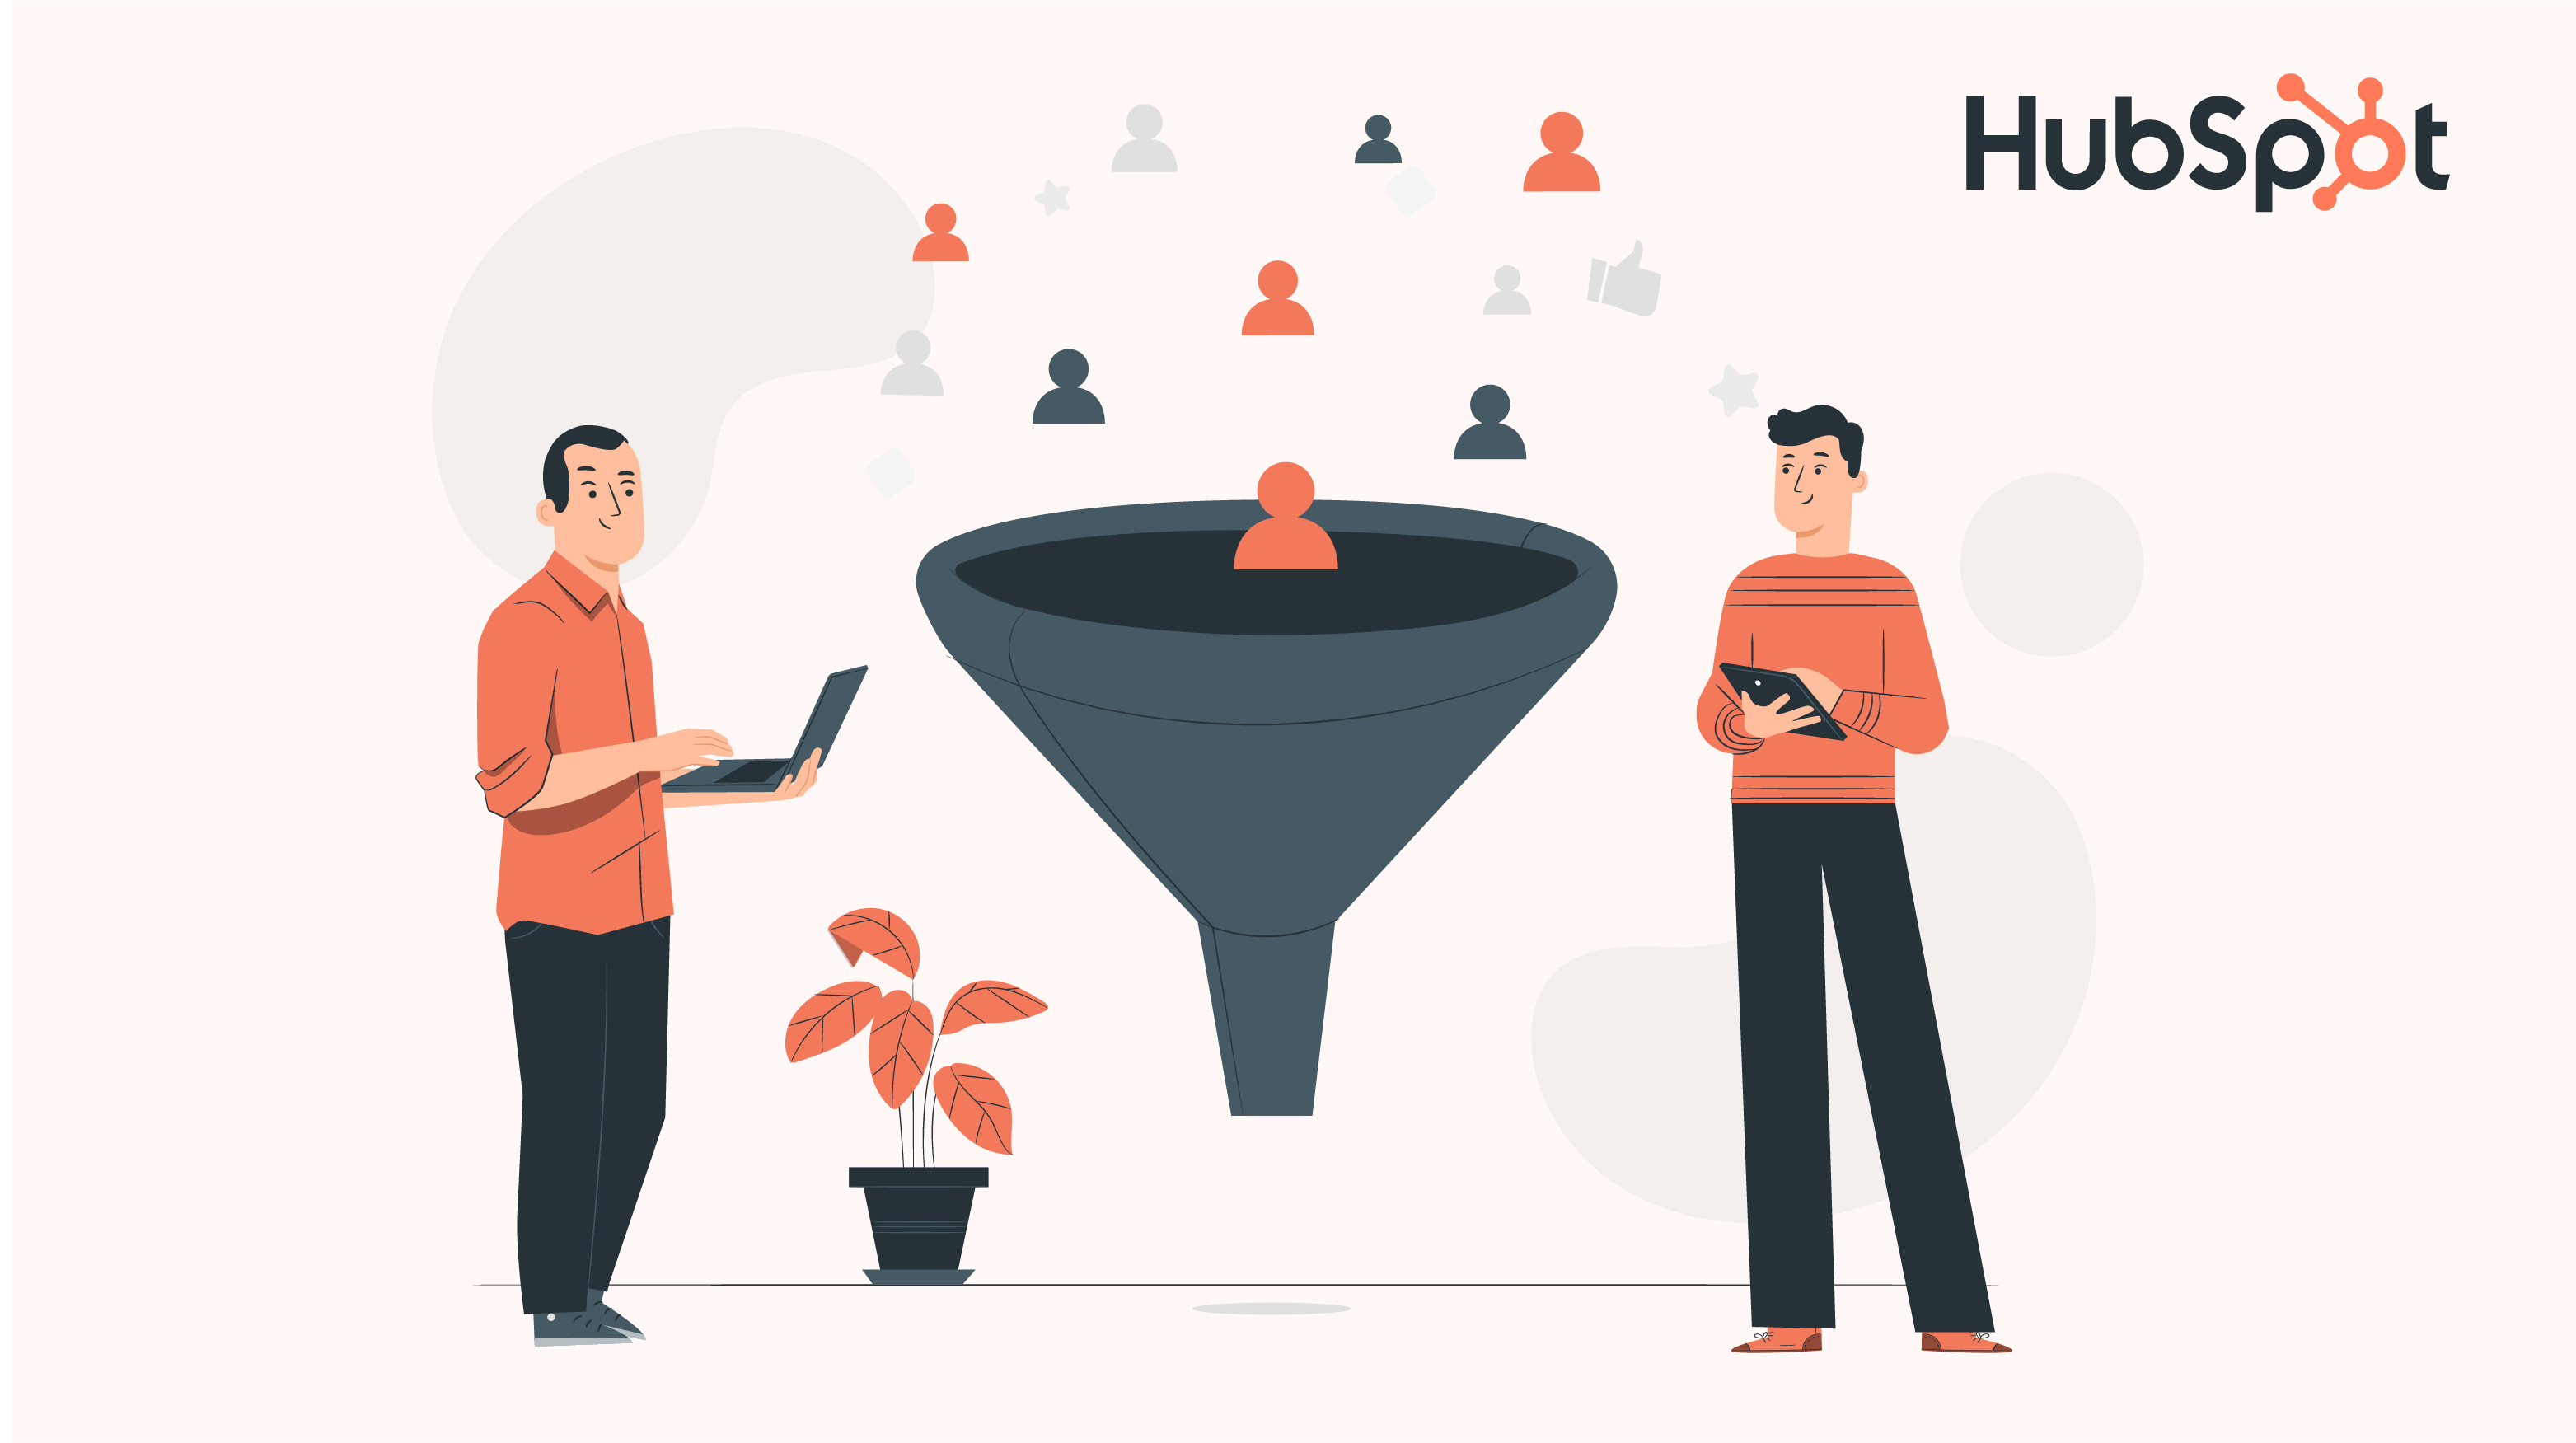 How you can Capture Qualified Leads through HubSpot Lead Capture Tools